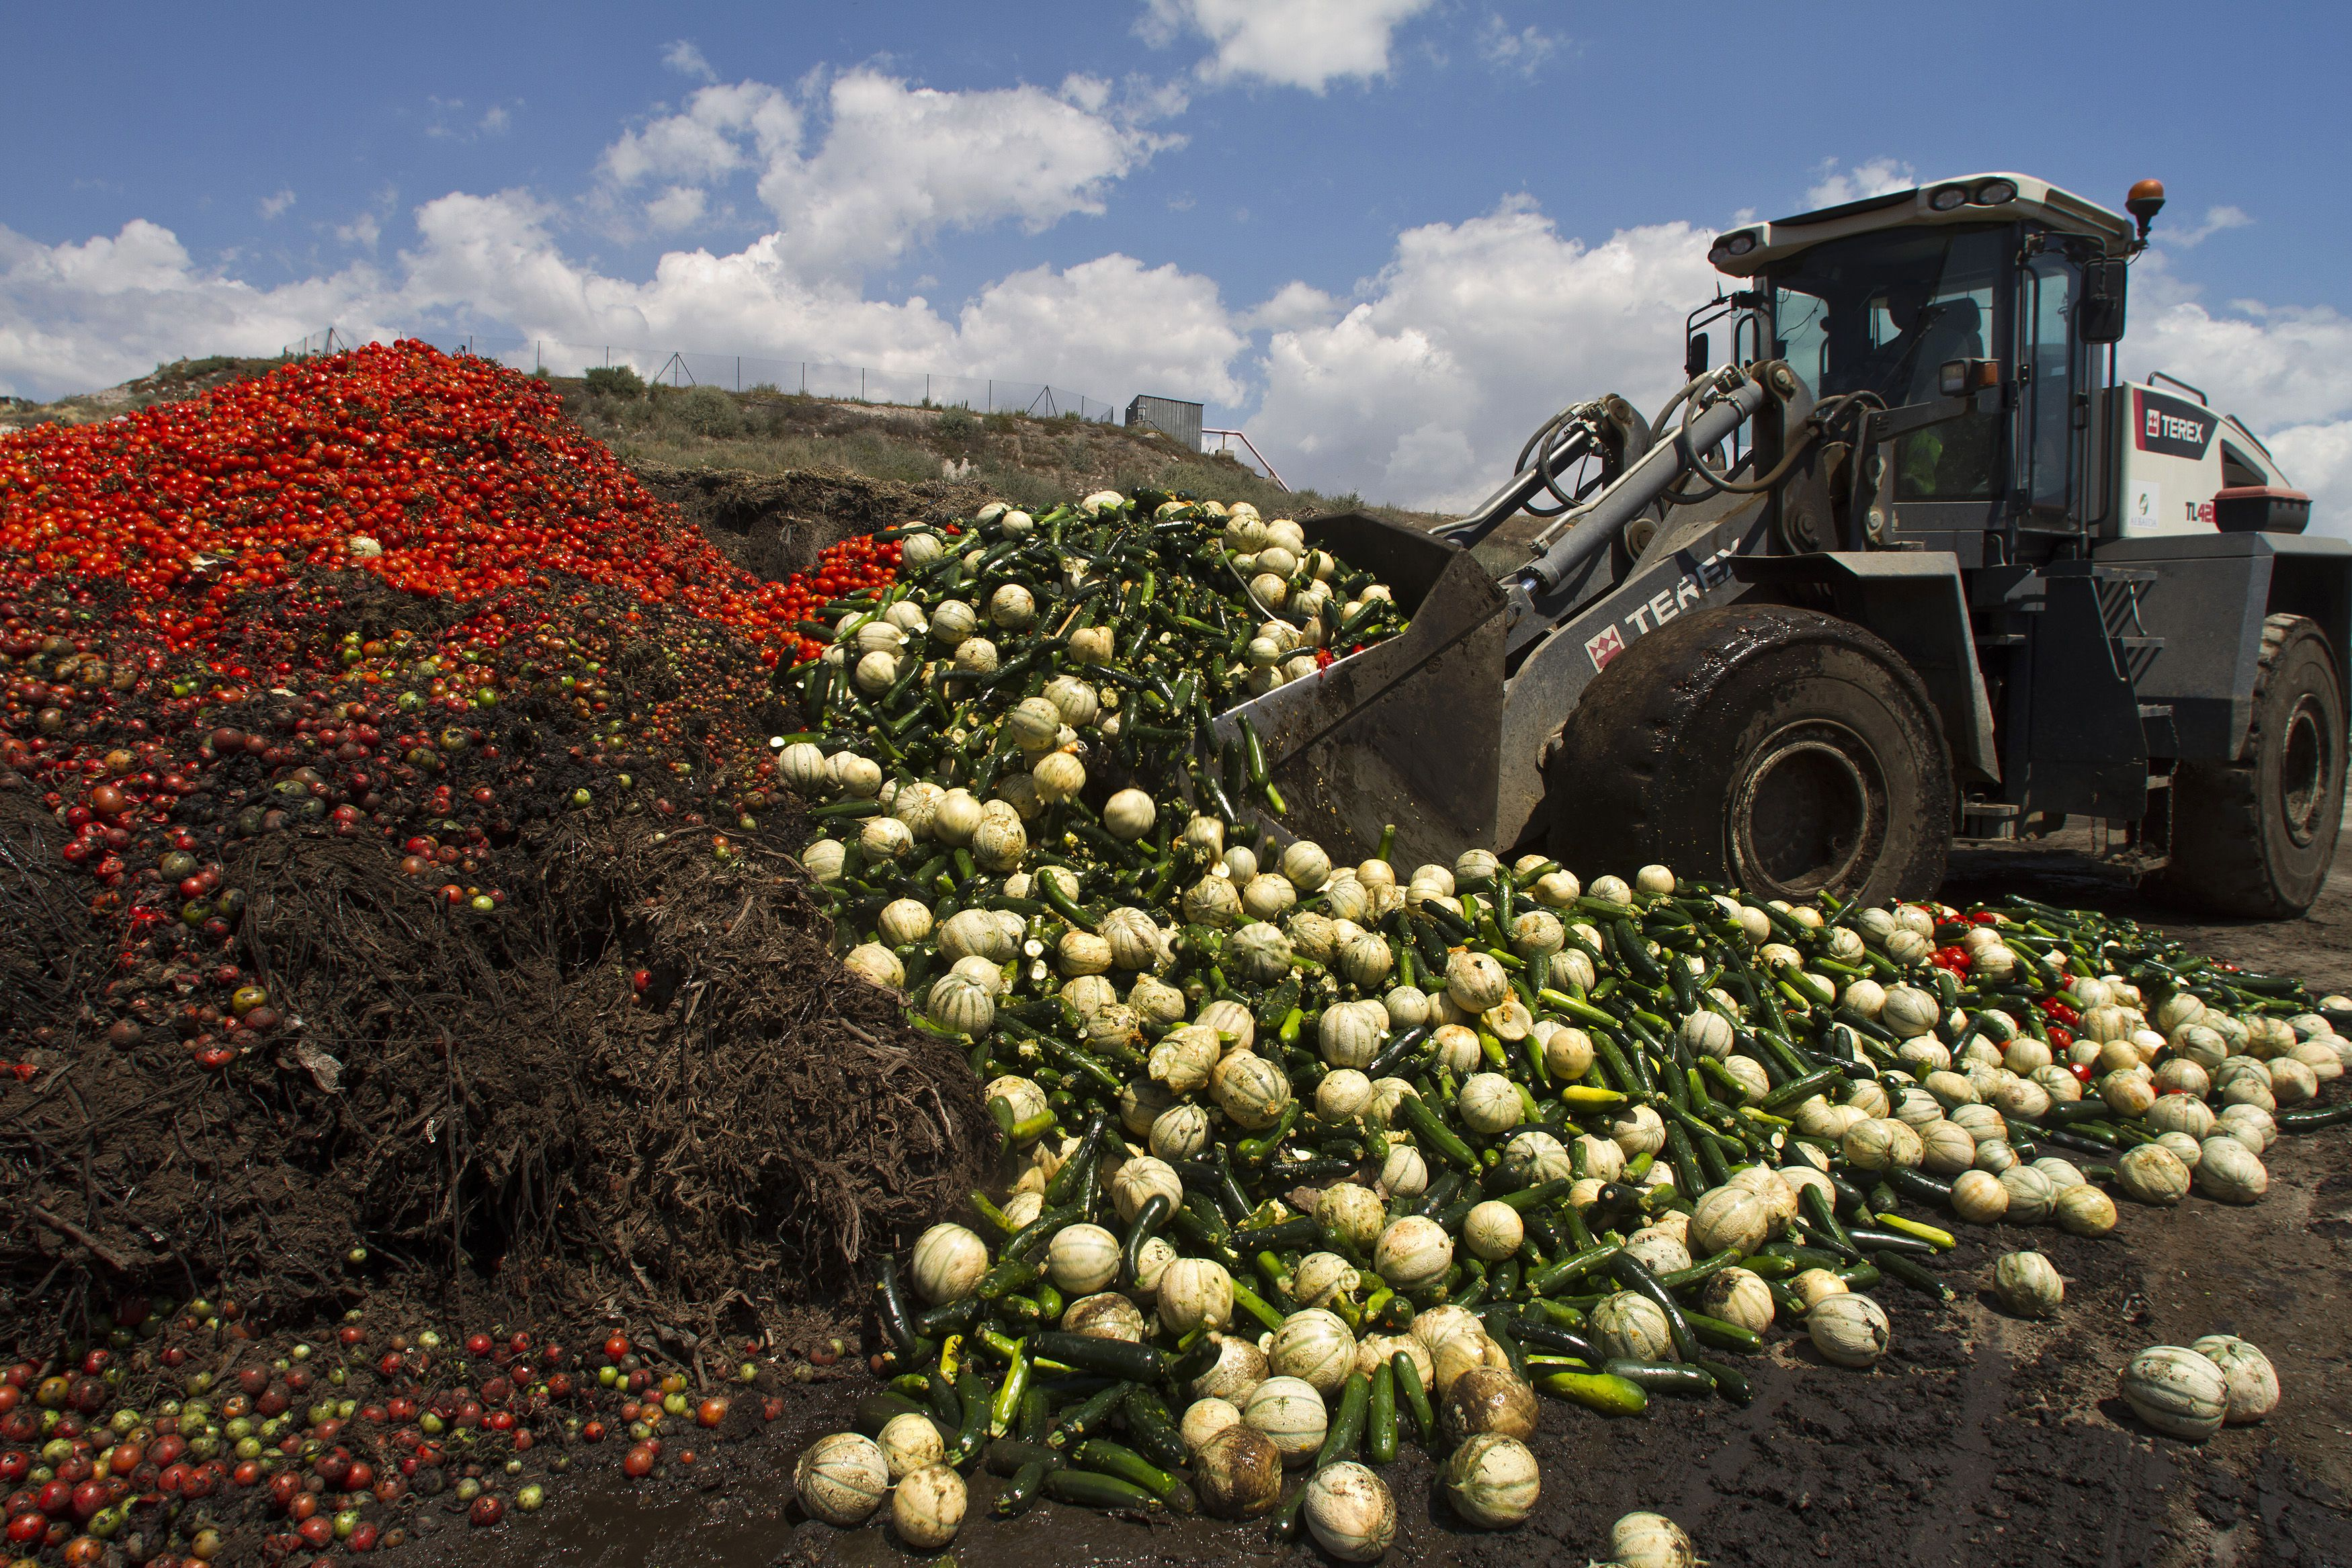 """A digger unloads discarded vegetables into a pile of vegetable residue at the Albahida vegetable recycling plant in Nijar, in the southern Spanish region of Almeria, June 8, 2011. On Tuesday the European Union offered farmers 150 million euros in aid to reimburse producers who have been unable to sell fruit and salad vegetables for nearly two weeks after being erroneously blamed for an E.coli outbreak in Germany"""". They want to fob us off with 150 million (euros). It's shameful, it's humiliating when losses in our country are above 350 million,"""" Miguel Lopez, general secretary of the COAG farmers' union told reporters.REUTERS/Francisco Bonilla (SPAIN - Tags: HEALTH AGRICULTURE BUSINESS IMAGES OF THE DAY) - RTR2NG6D"""